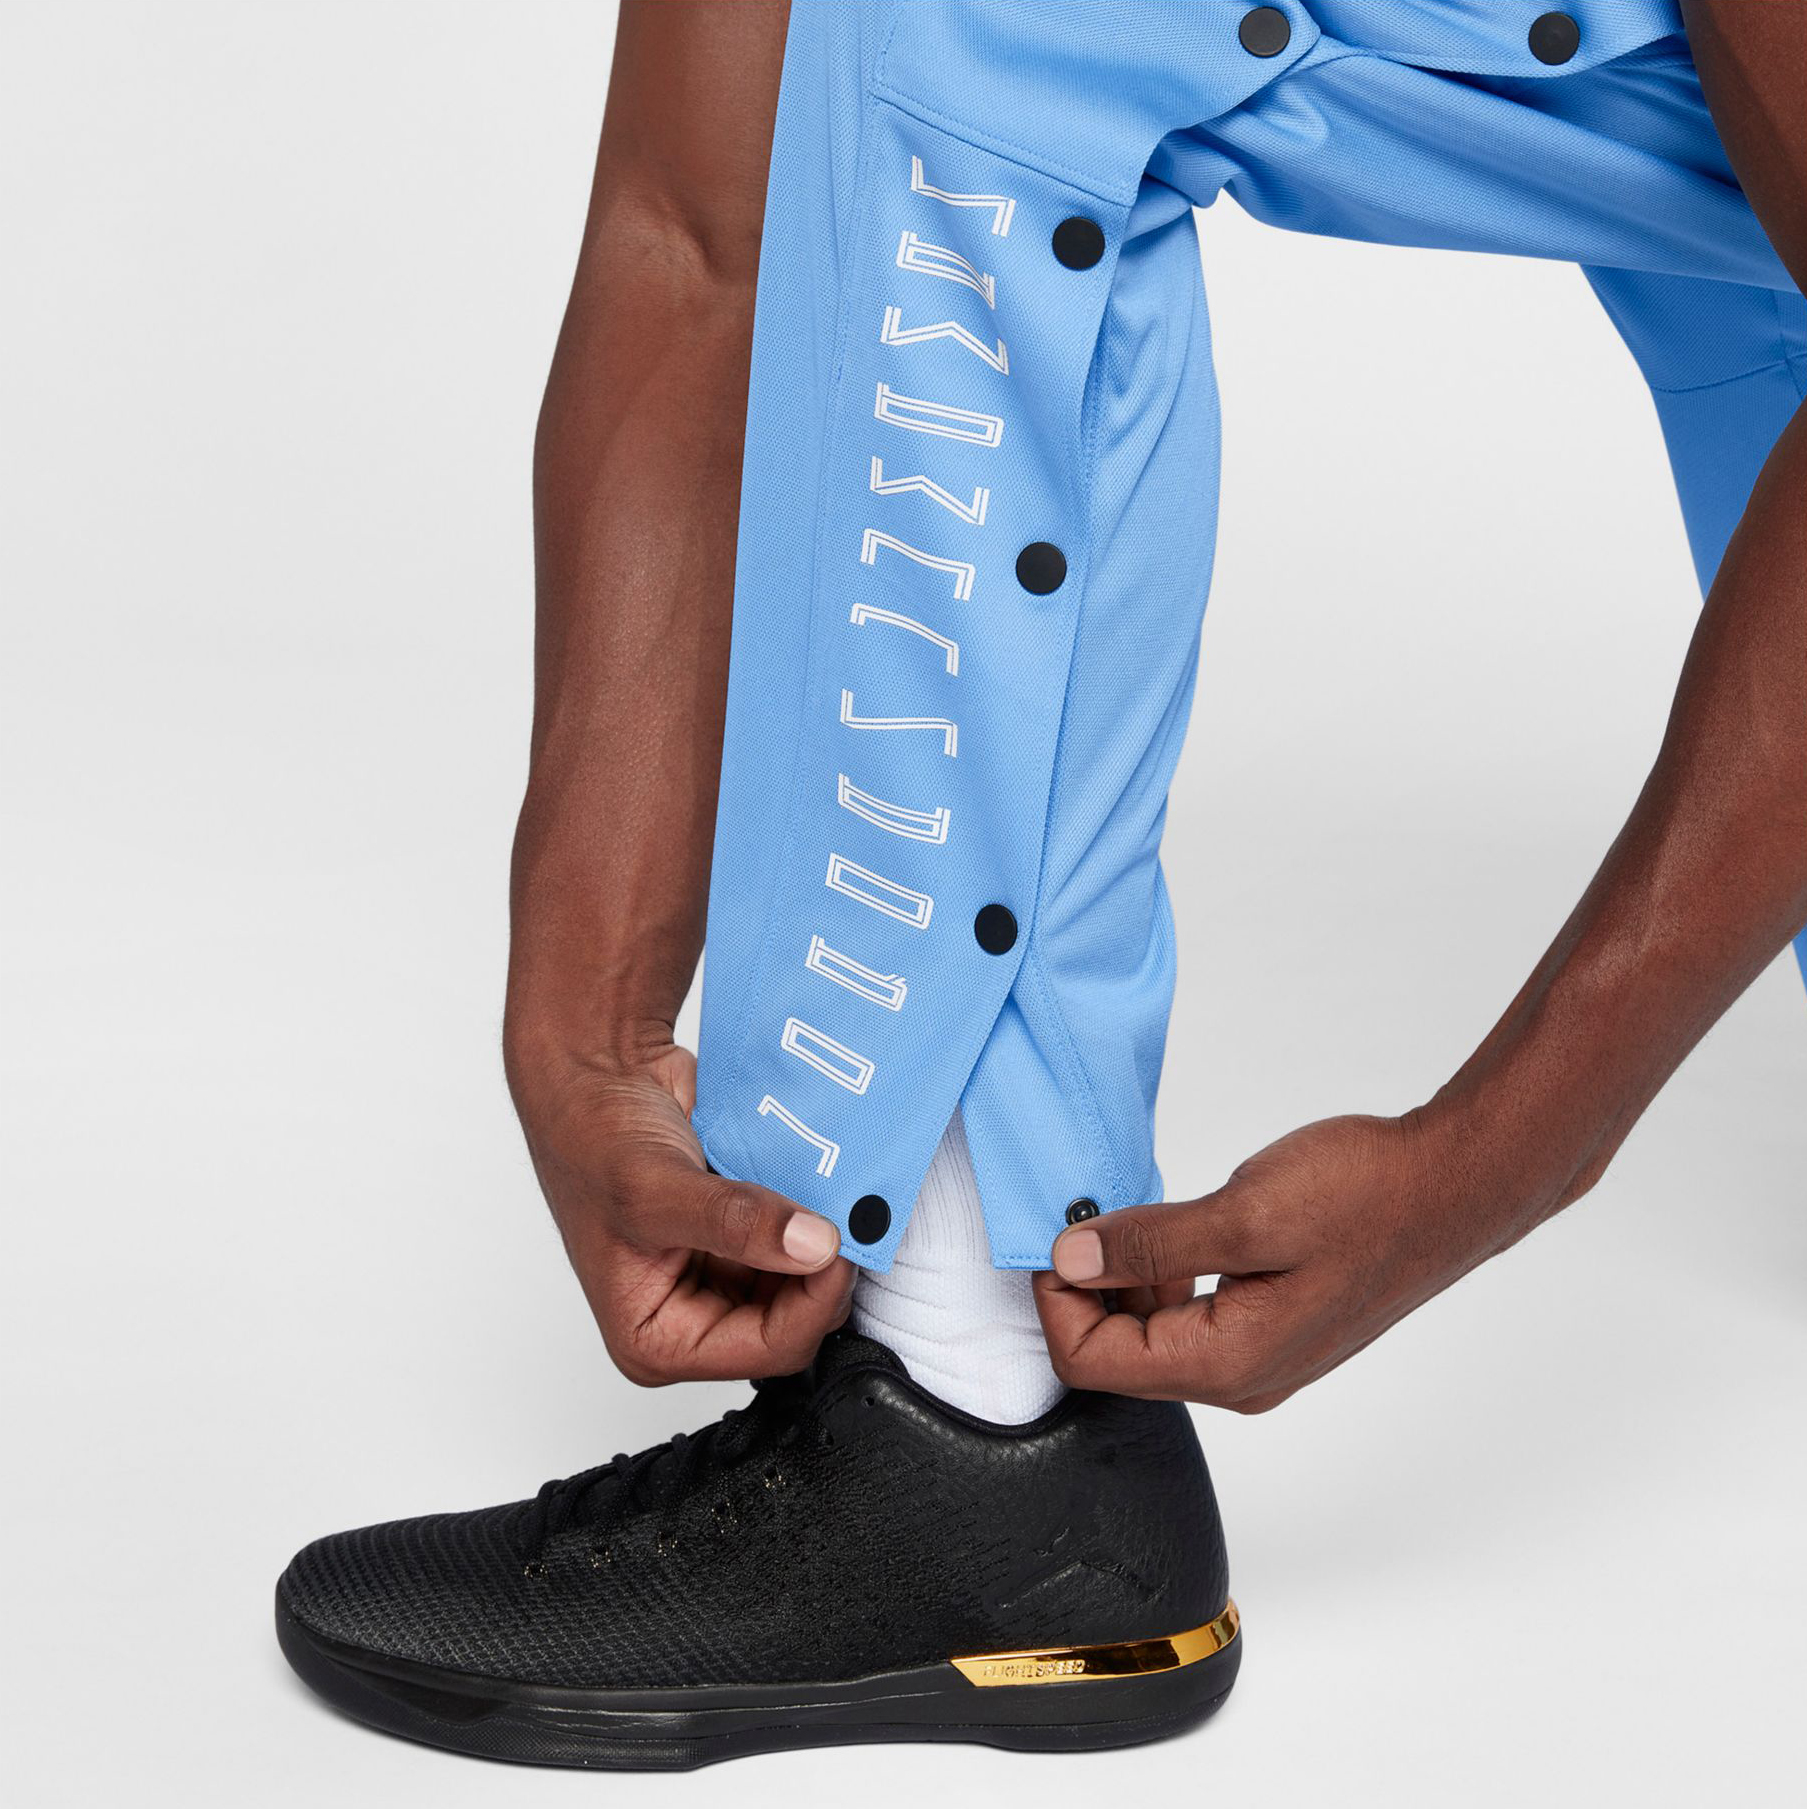 jordan-11-win-like-82-unc-pants-4